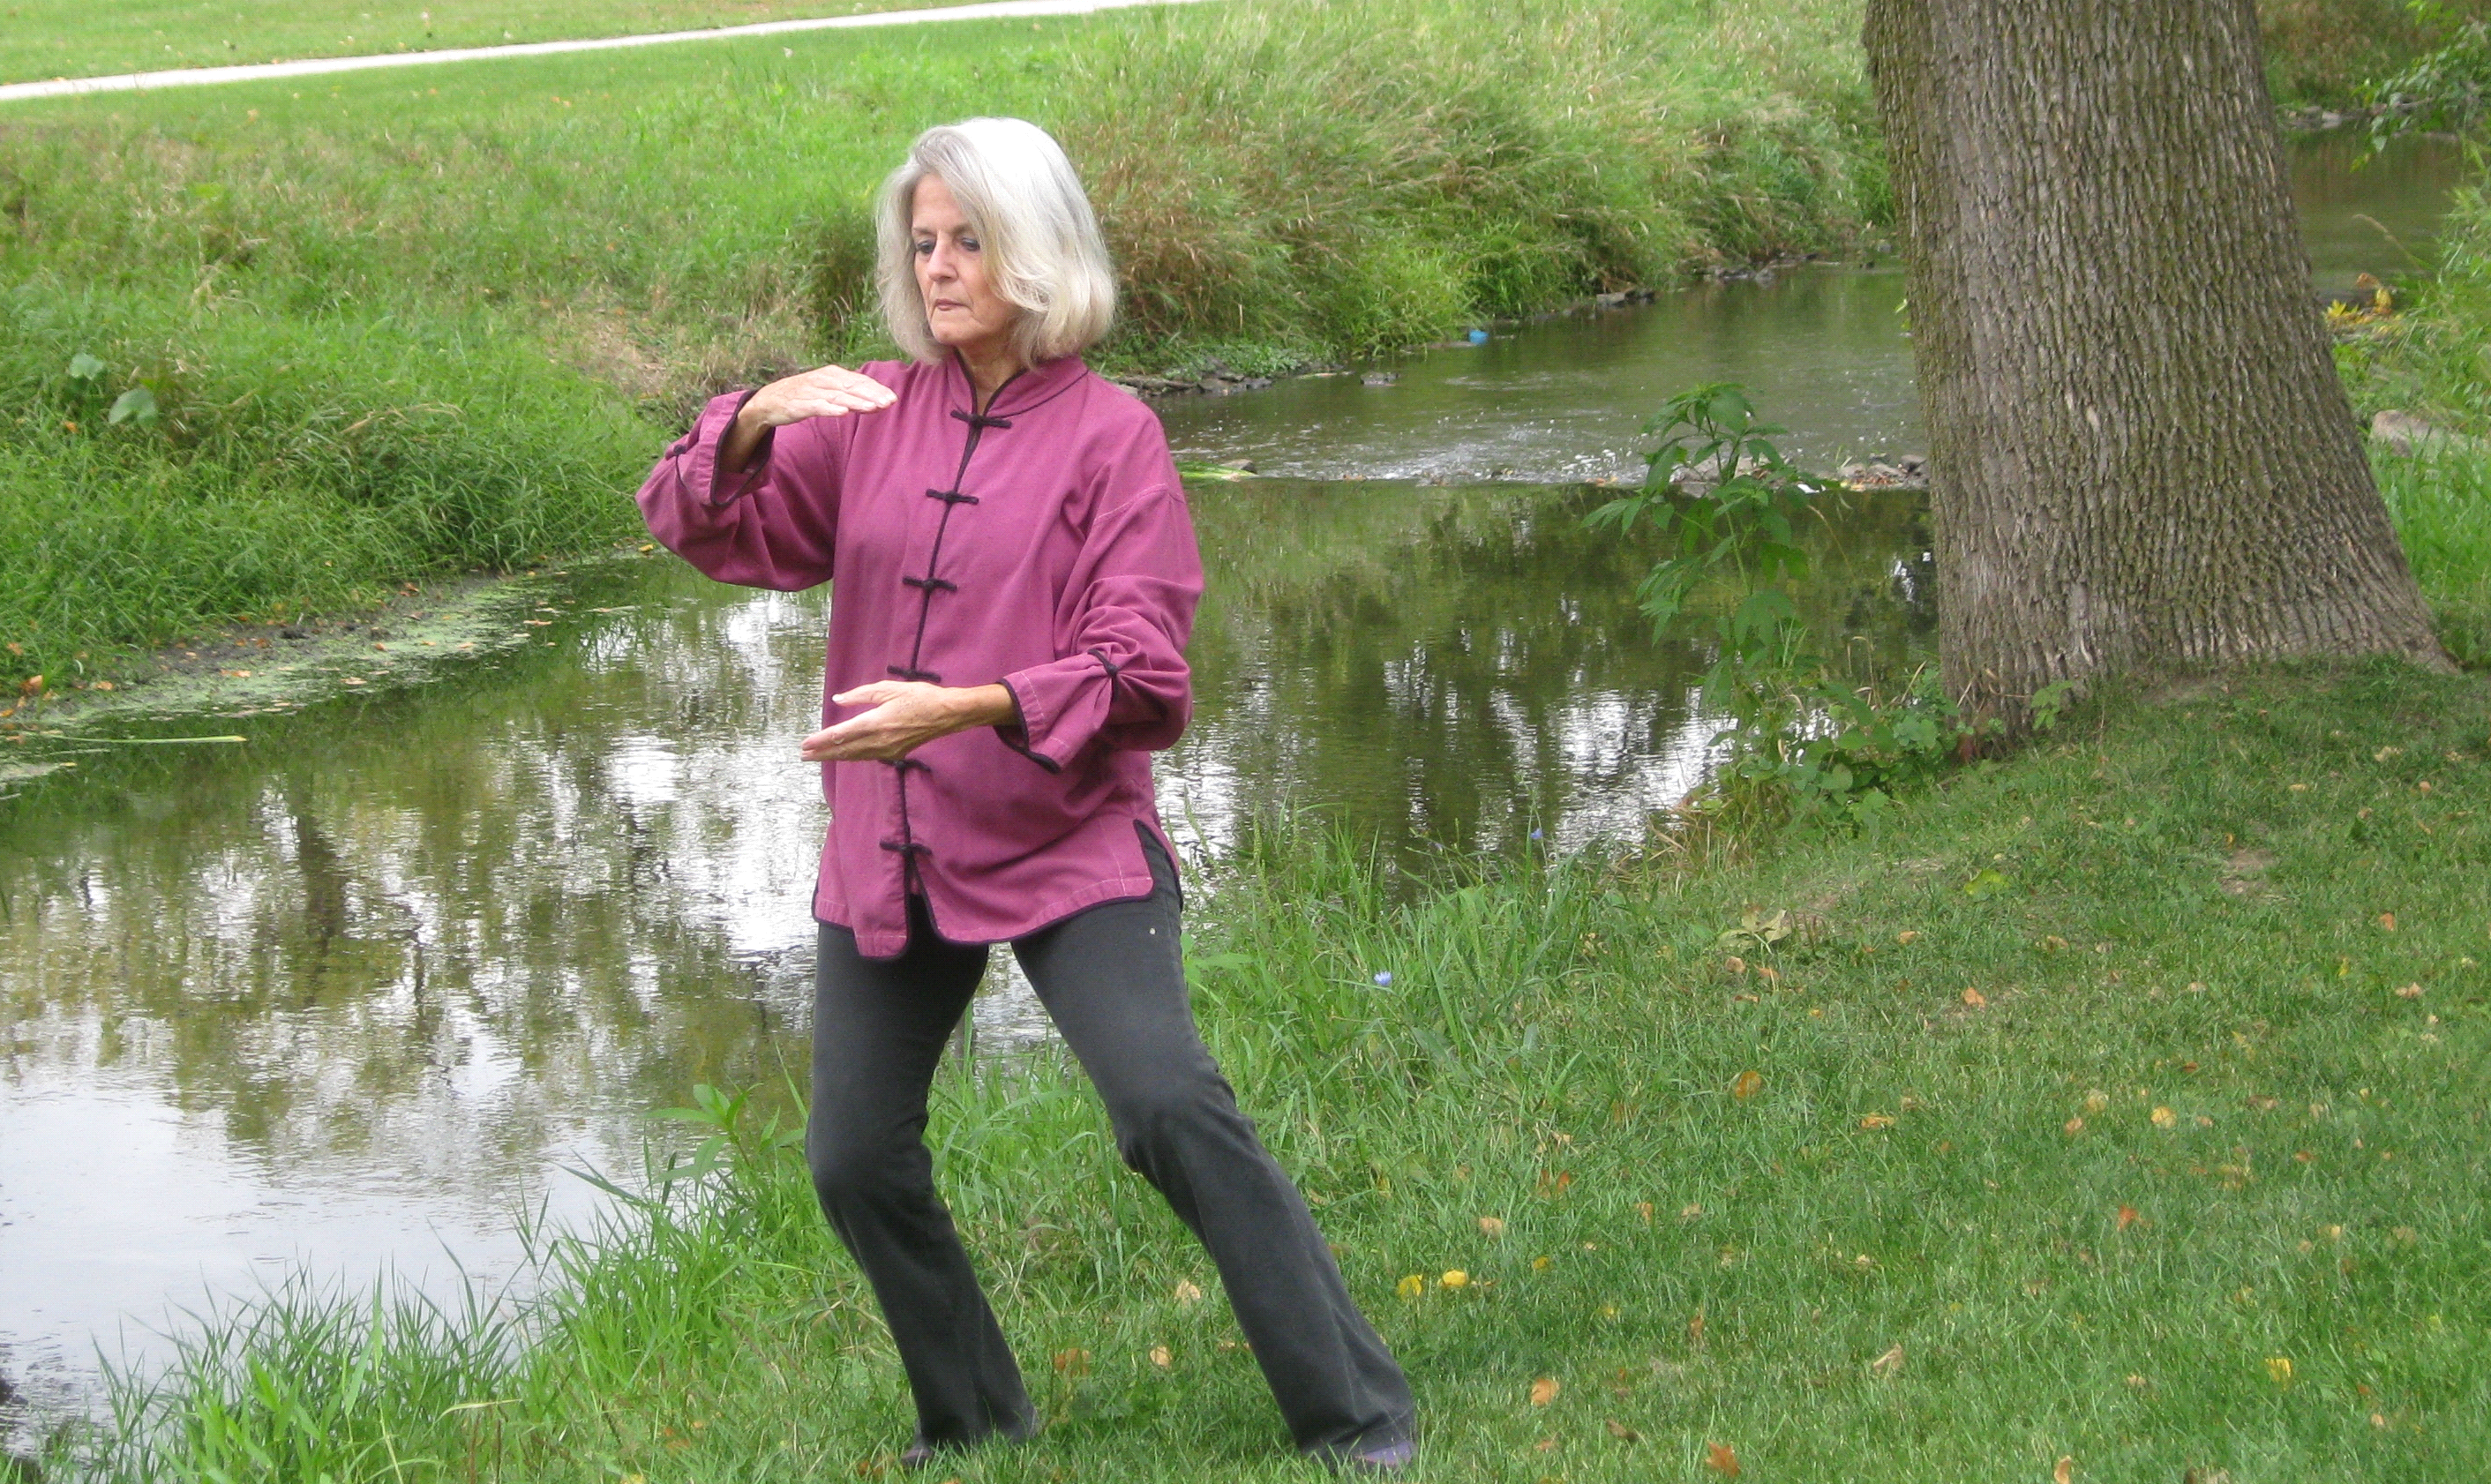 Tai Chi move by lady standing in grass along water edge.